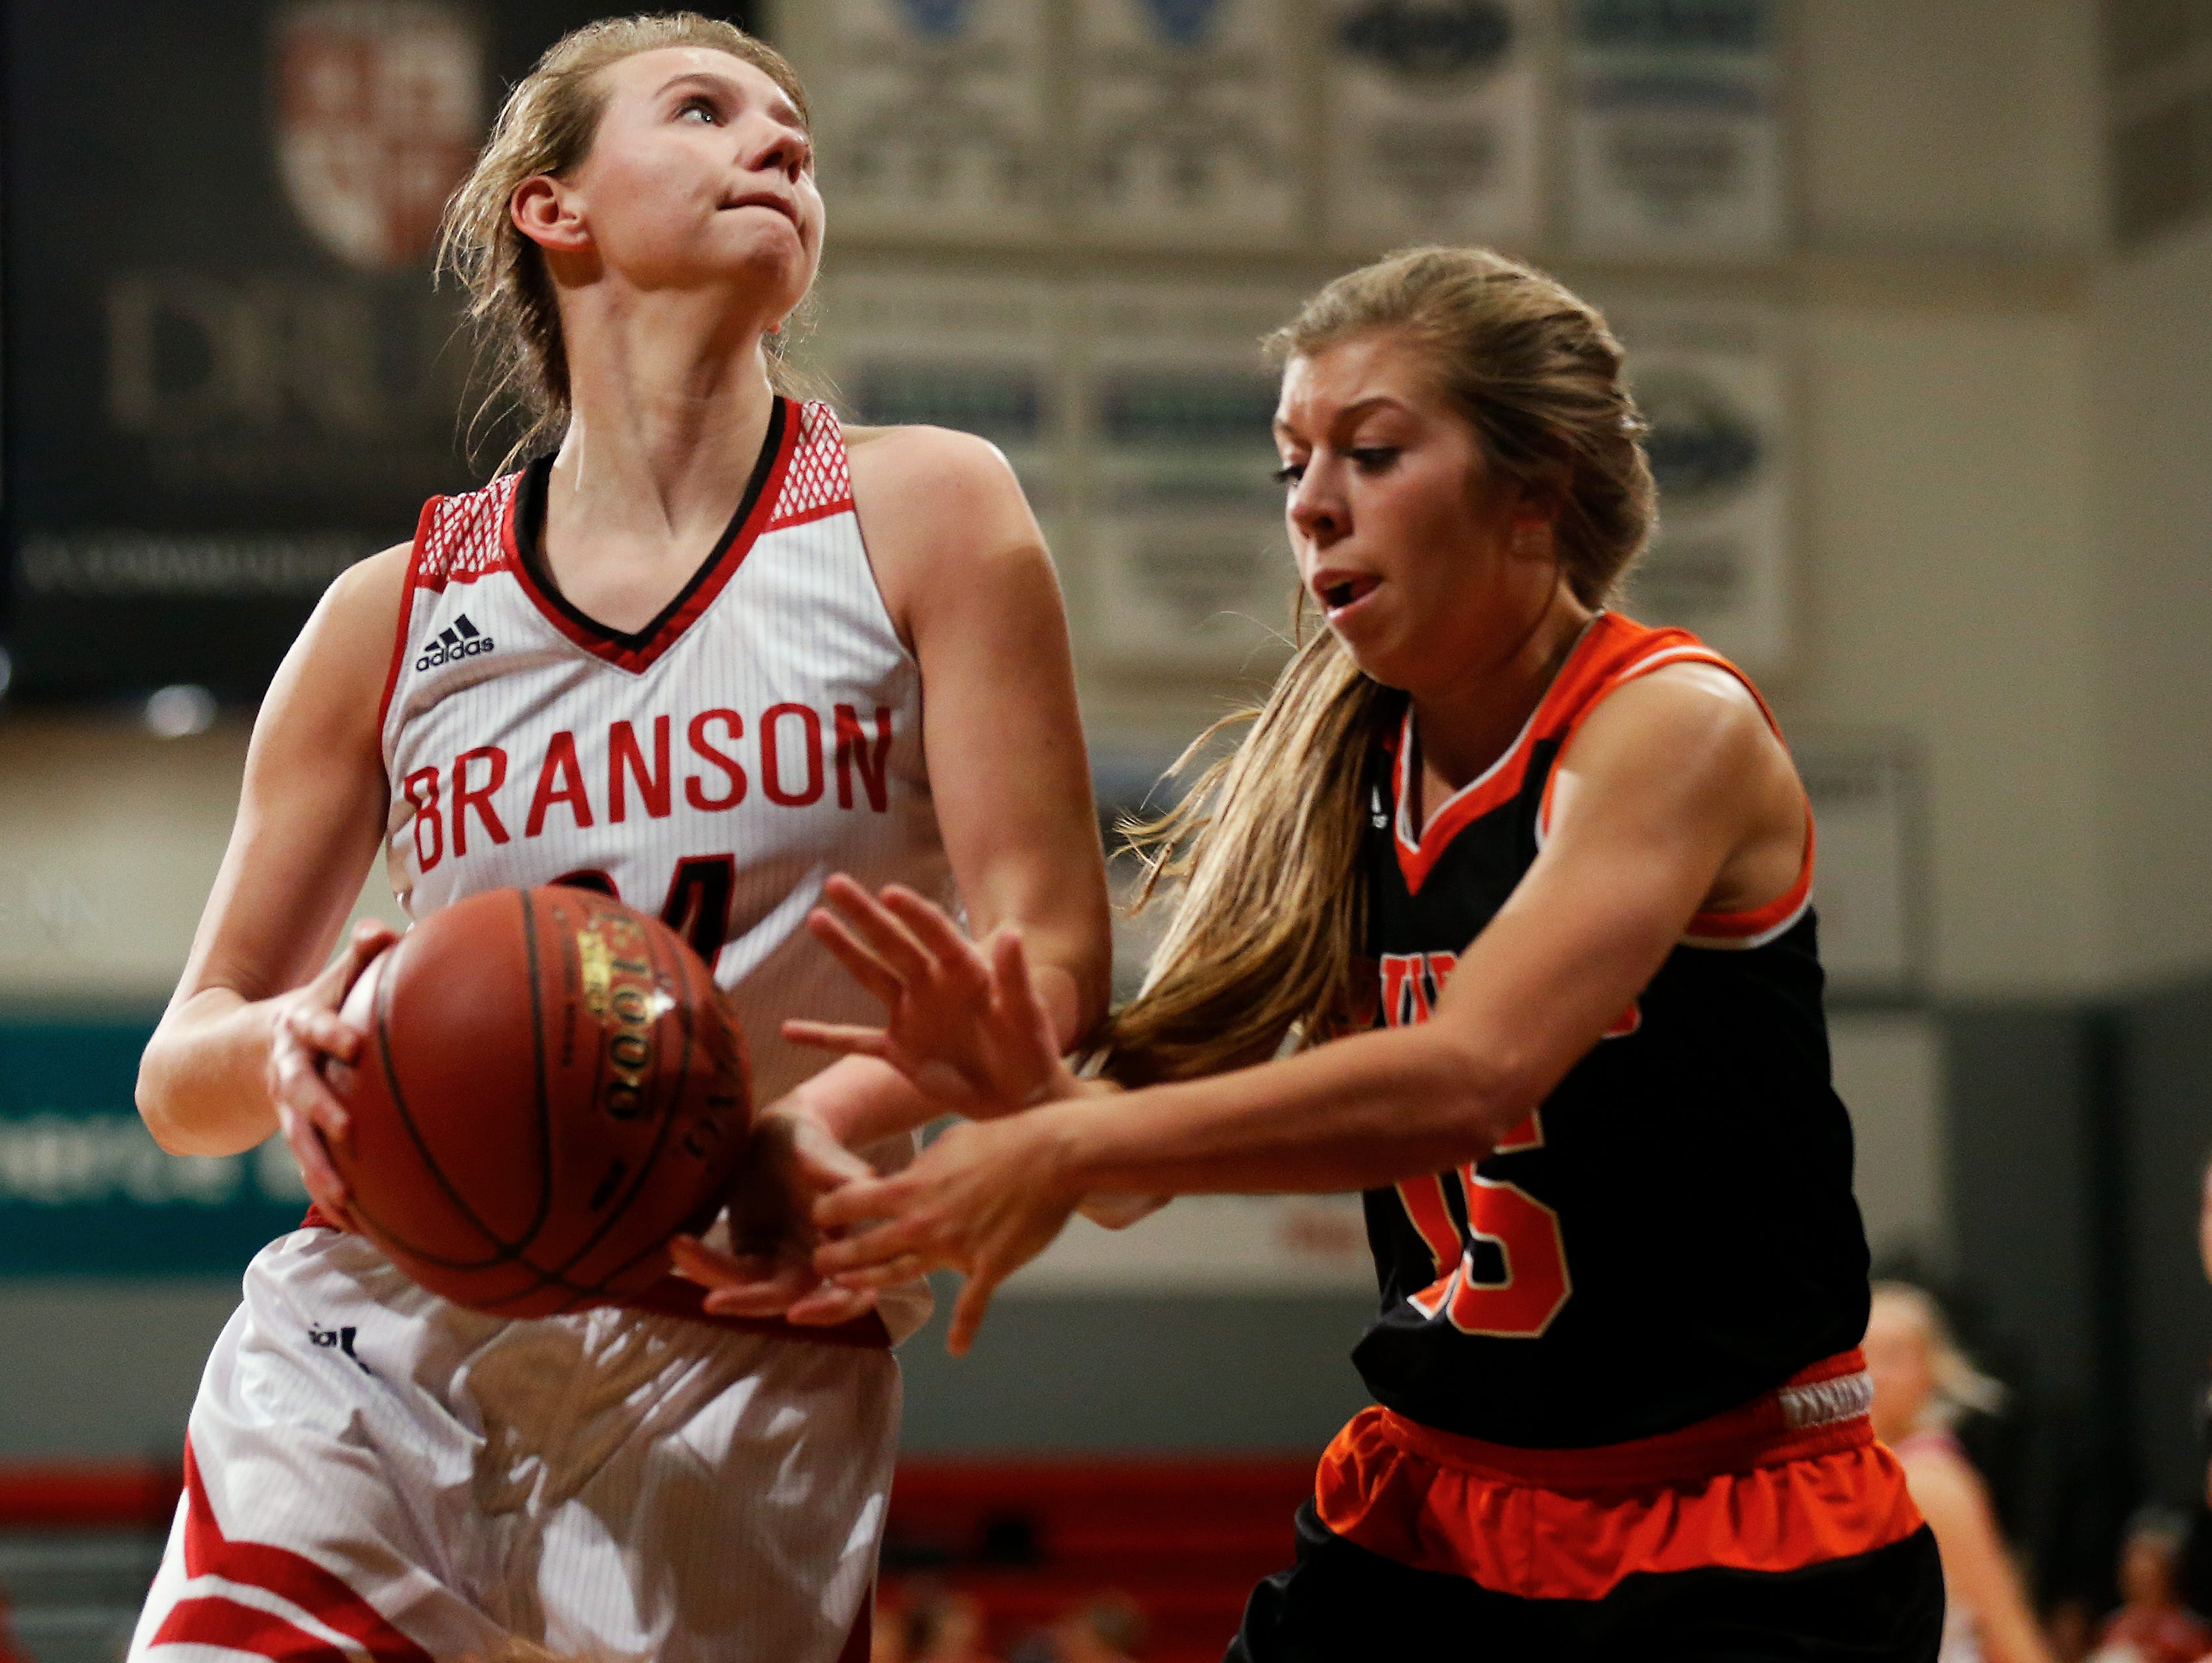 Branson Lady Pirates guard Amanda Kearney (24) drives the ball against Lady Tigers guard Madison Appleberry (15) during third quarter action of the MSHSAA Class 5 sectional playoff game between the Branson High School Lady Pirates and the Republic High School Lady Tigers at the O'Reilly Family Event Center in Springfield, Mo. on March 8, 2017.